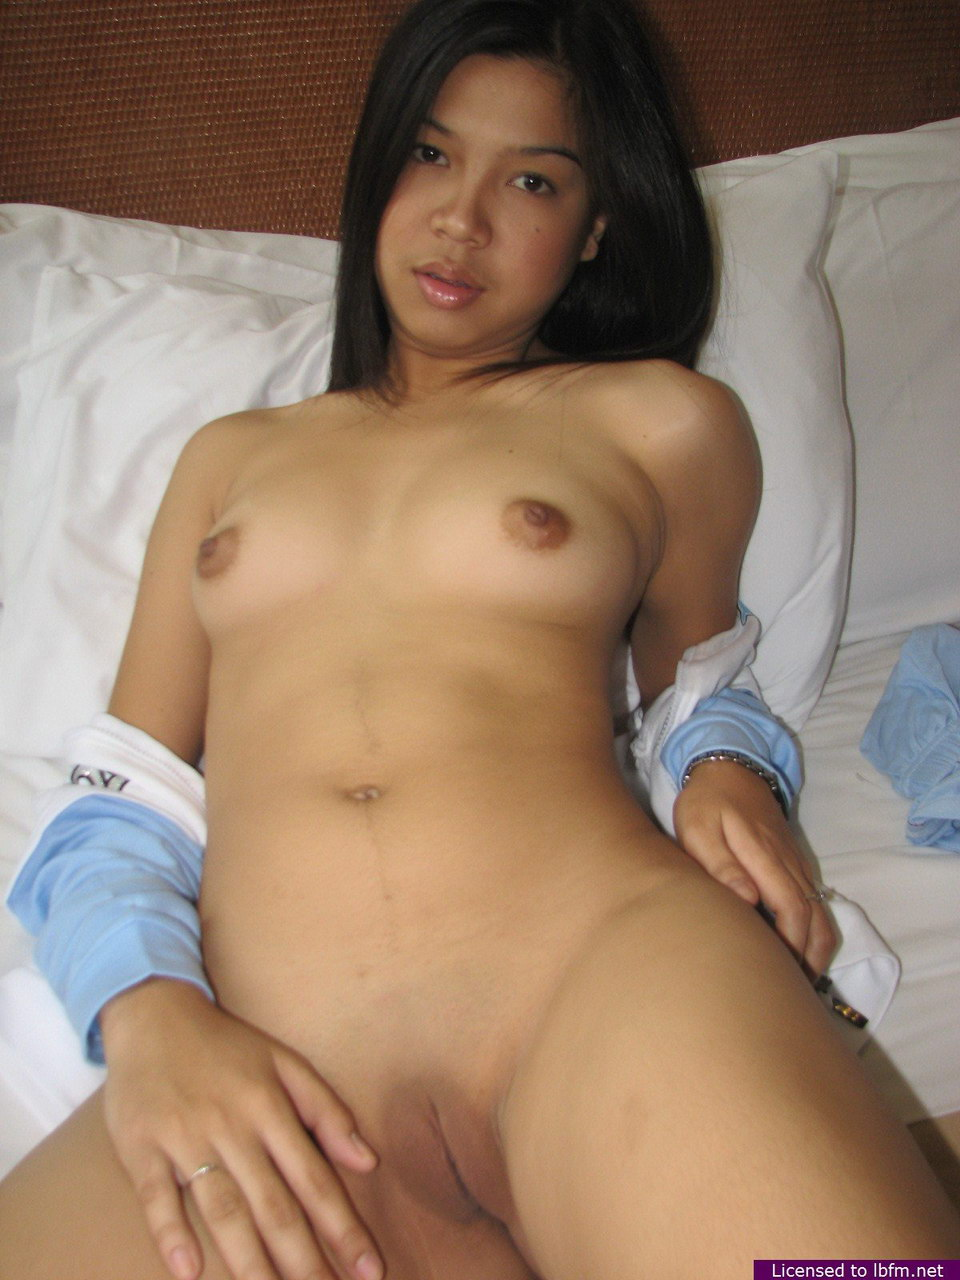 funny nude asian girls